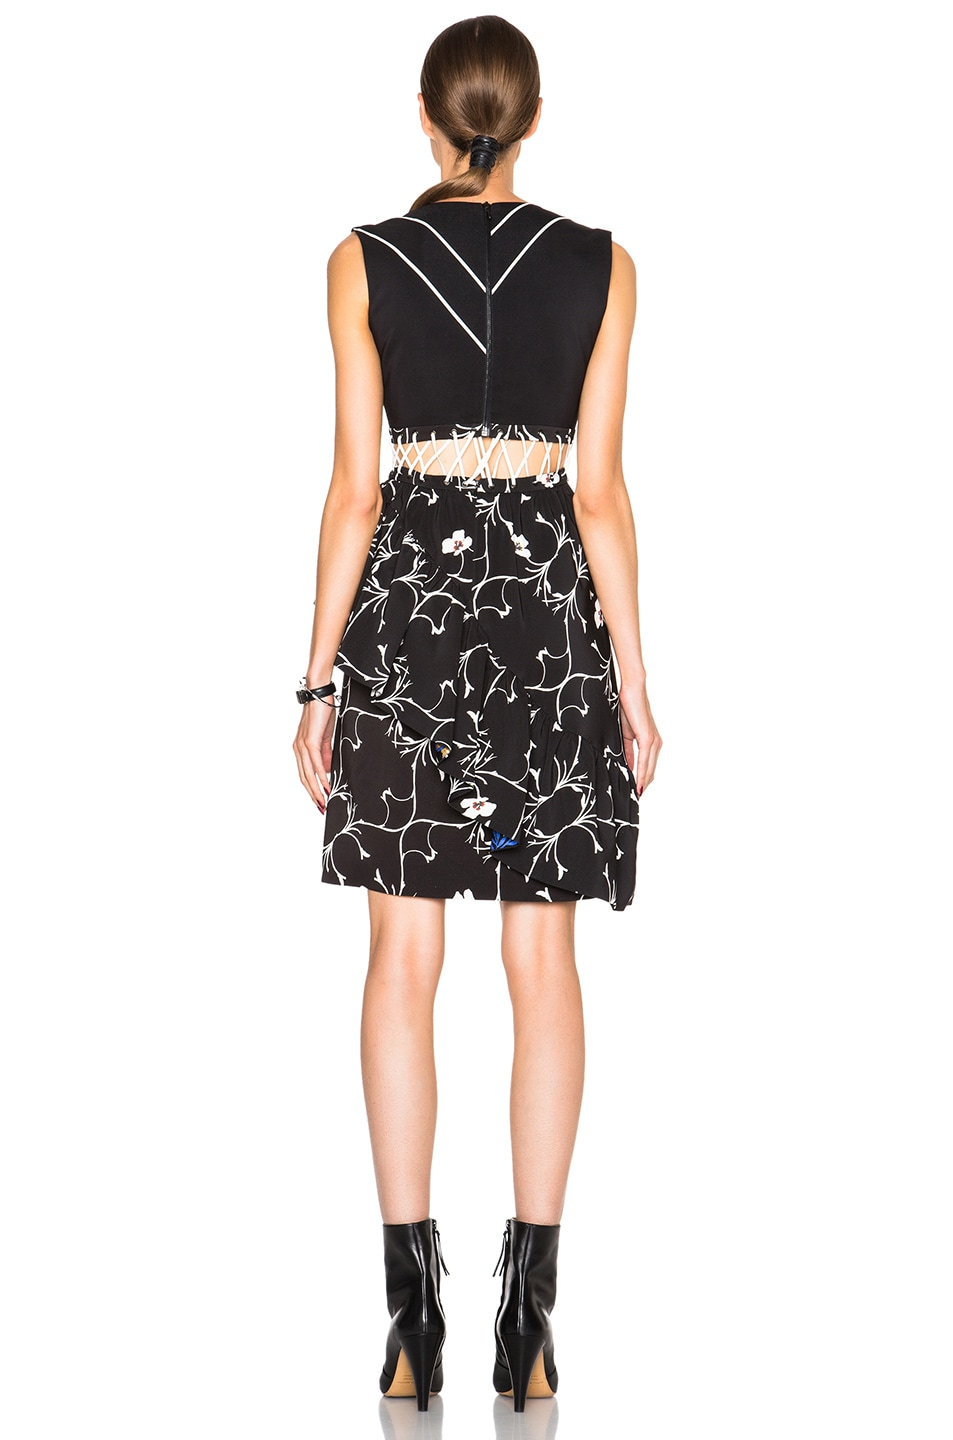 Image 4 of Preen by Thornton Bregazzi Lina Dress in Black & White Leaf